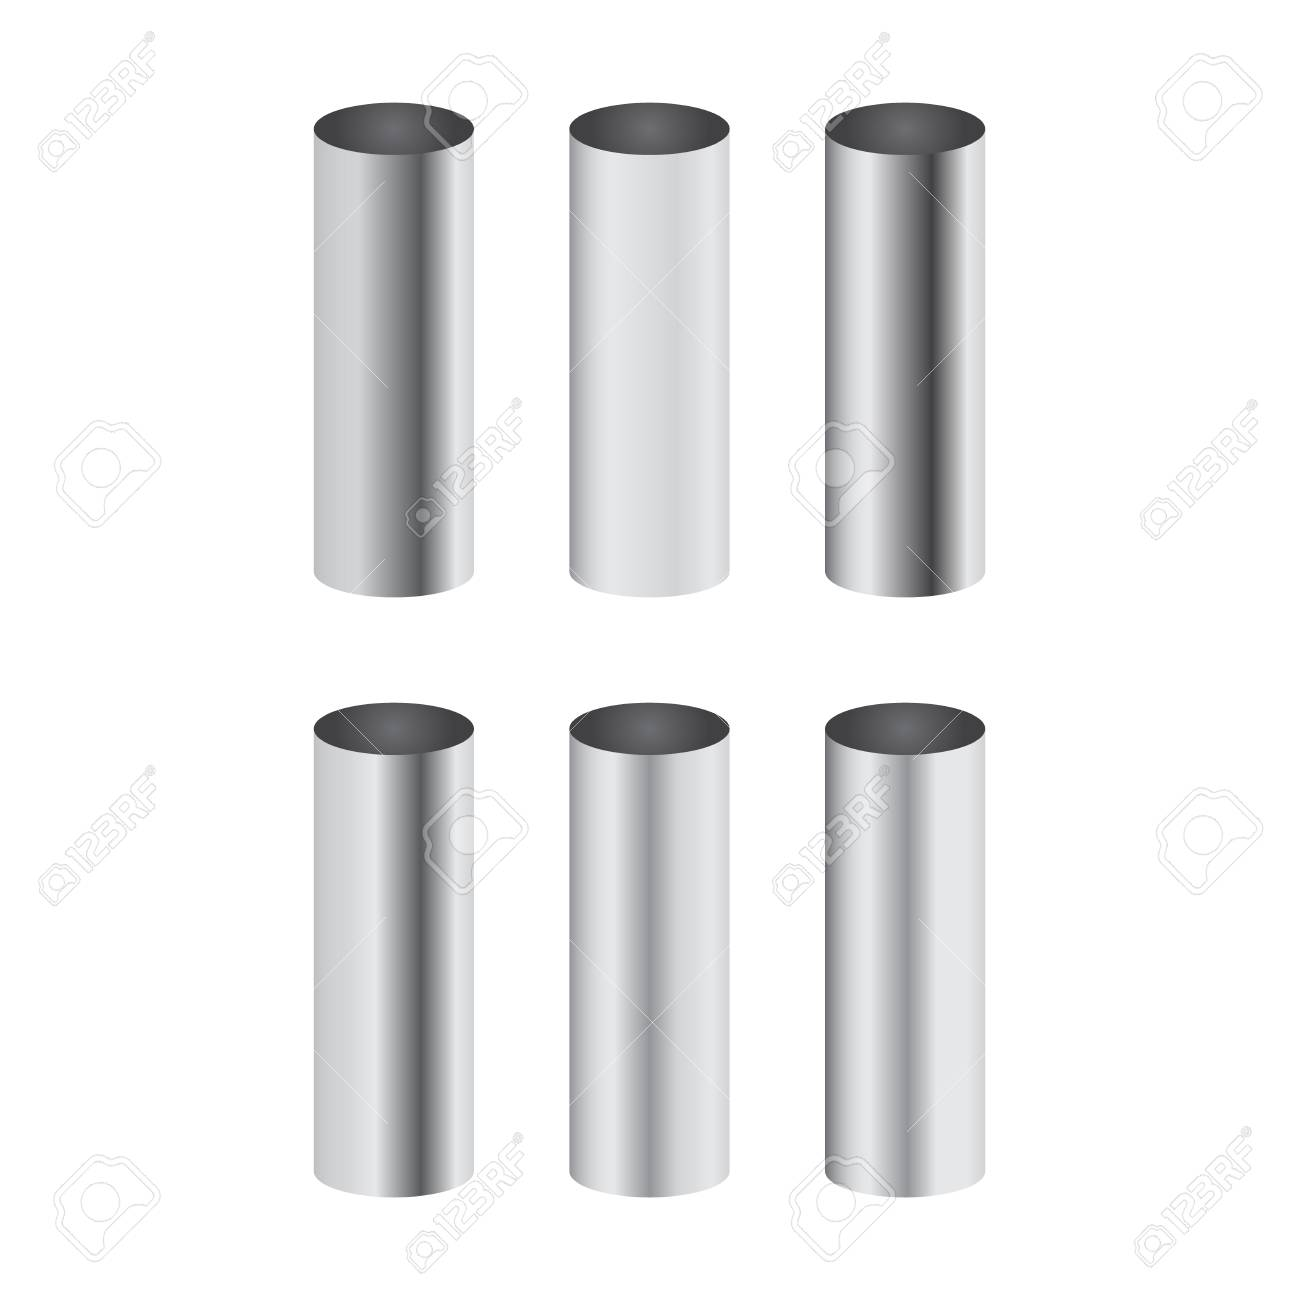 Chrome metal polished gradients corresponding to cylinder pipe vector set - 110788416